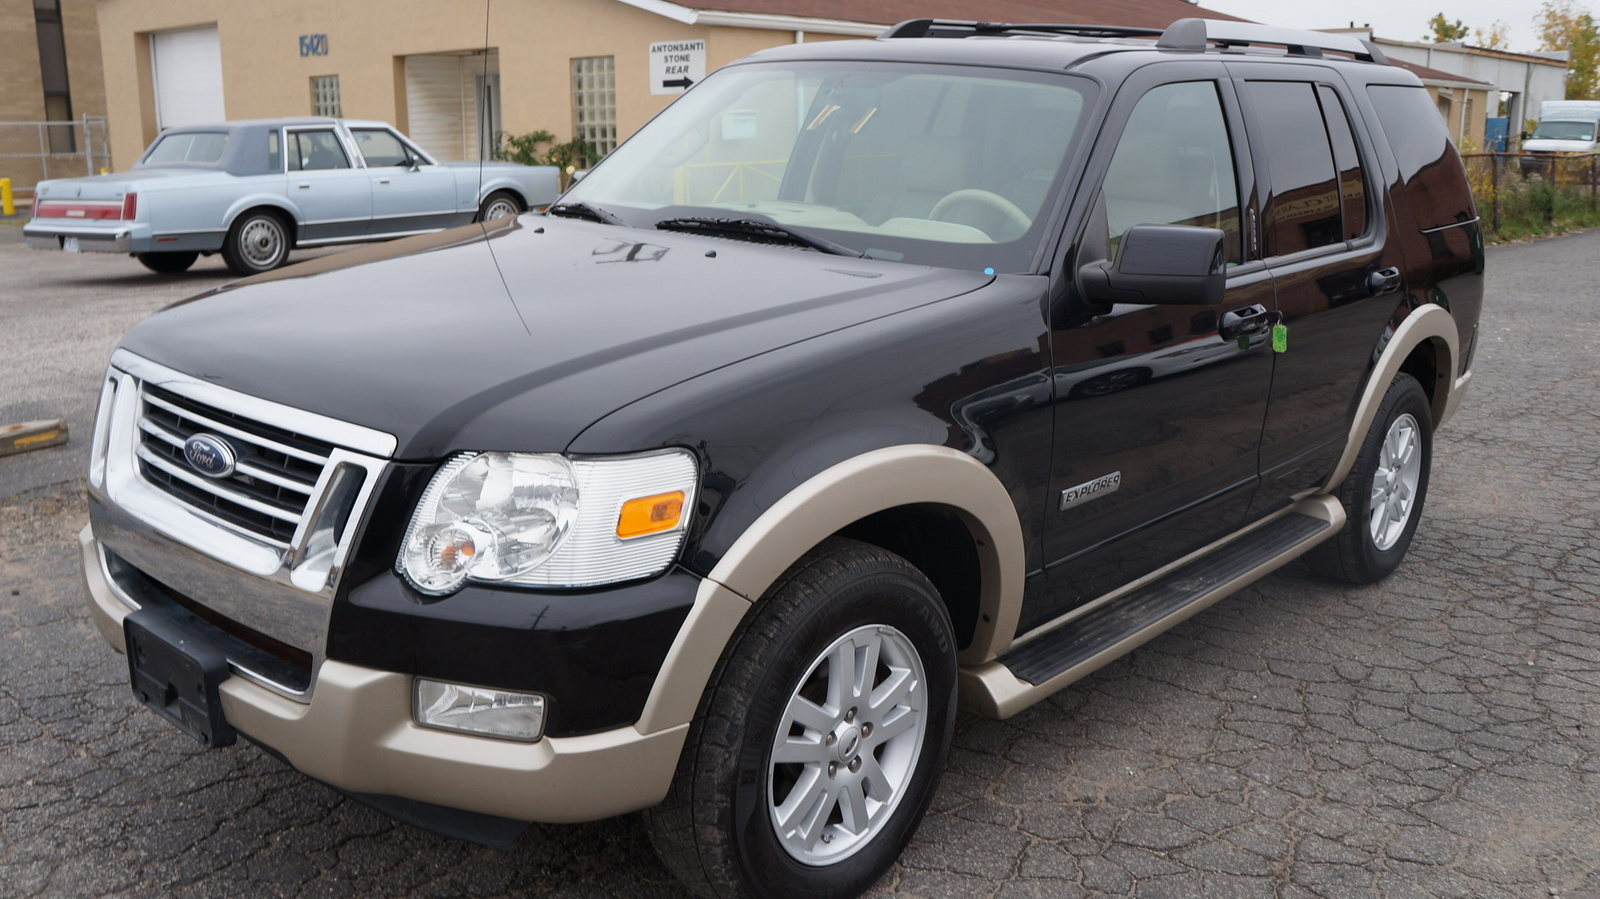 2009 ford explorer eddie bauer ford explorer eddie bauer. Cars Review. Best American Auto & Cars Review